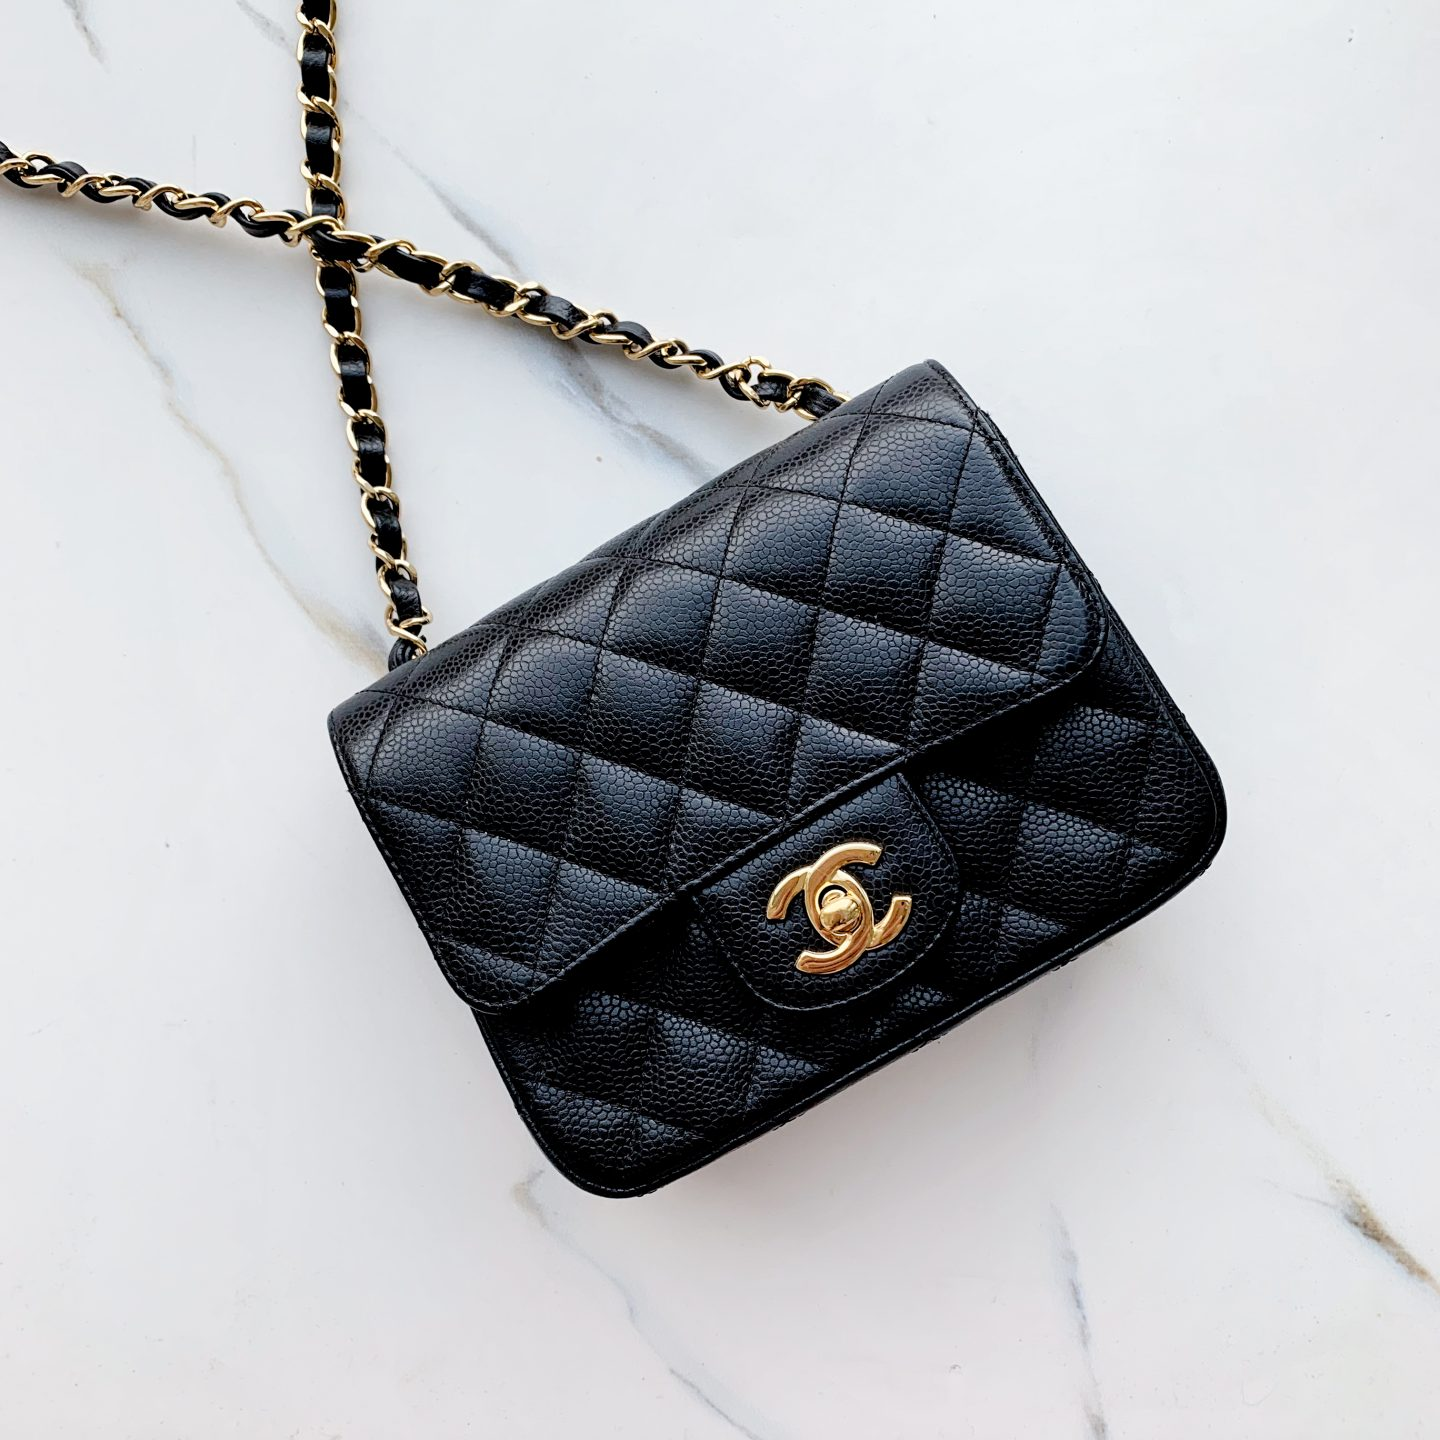 The Best First Chanel Bag Chase Amie